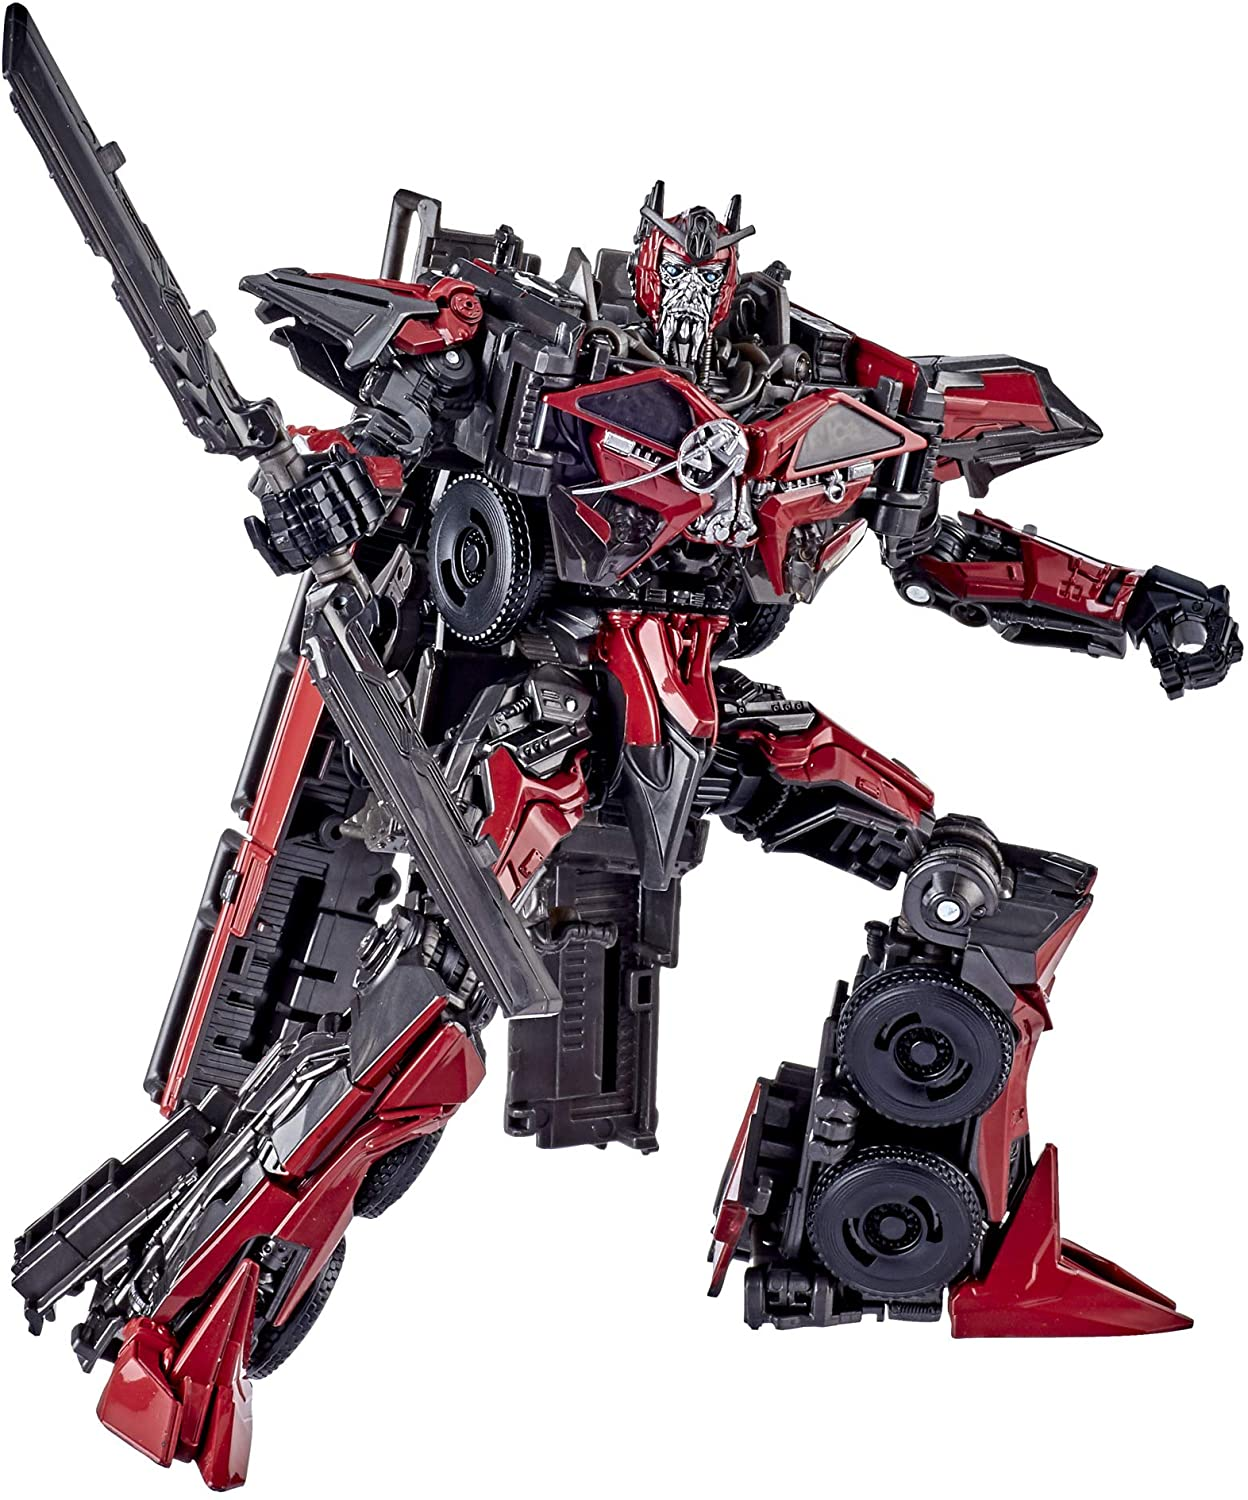 Transformers Toys Studio Series 61 Voyager Class Dark of The Moon Sentinel Prime Action Figure – Adults and Kids Ages 8 and Up, 6.5 inch